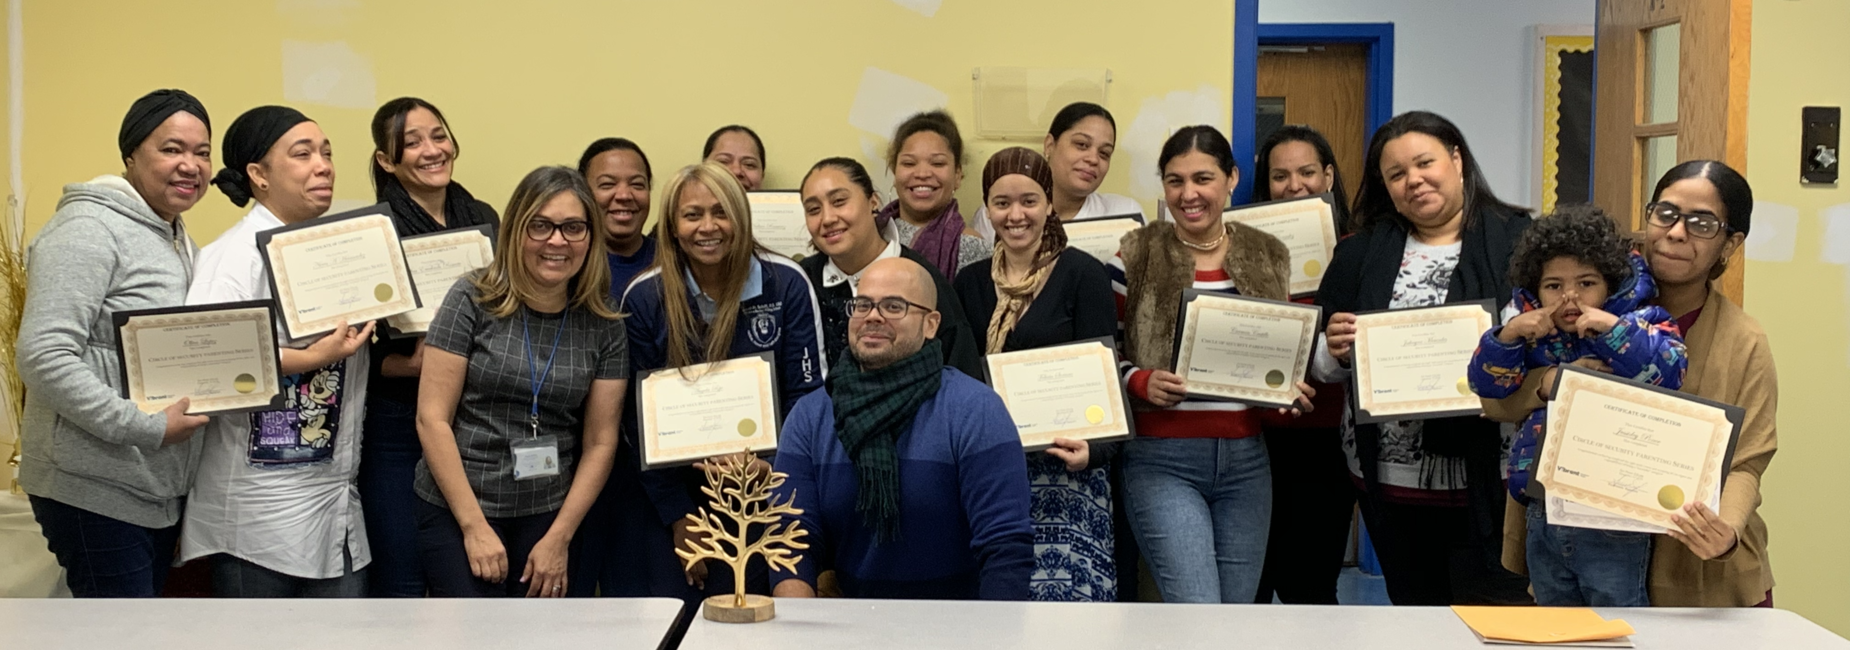 PARENTING CLASS GRADUATES WITH CERTIFICATES FROM VIBRANT